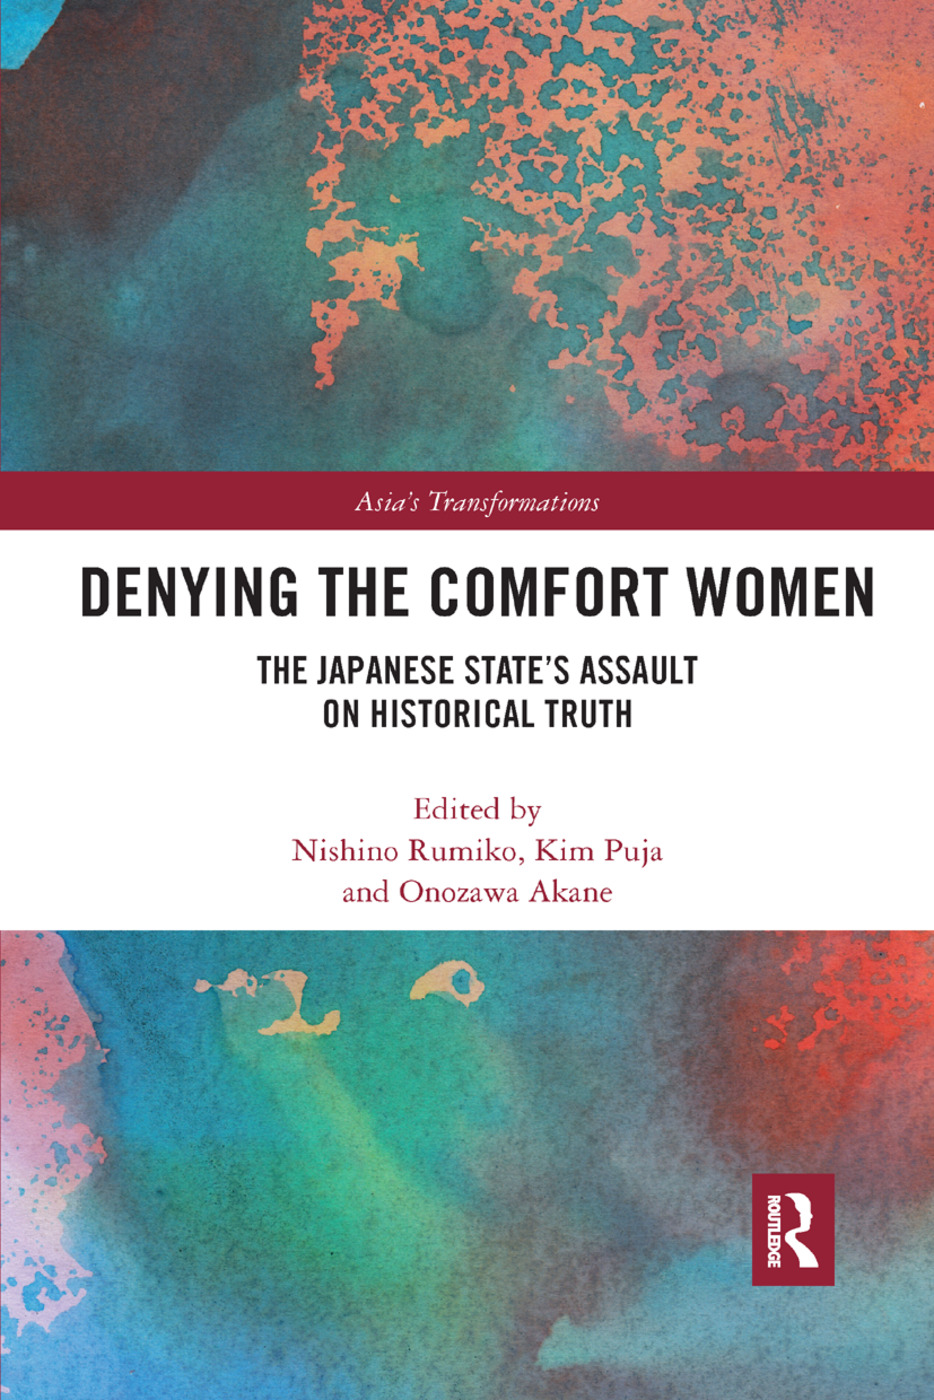 Denying the Comfort Women: The Japanese State's Assault on Historical Truth book cover